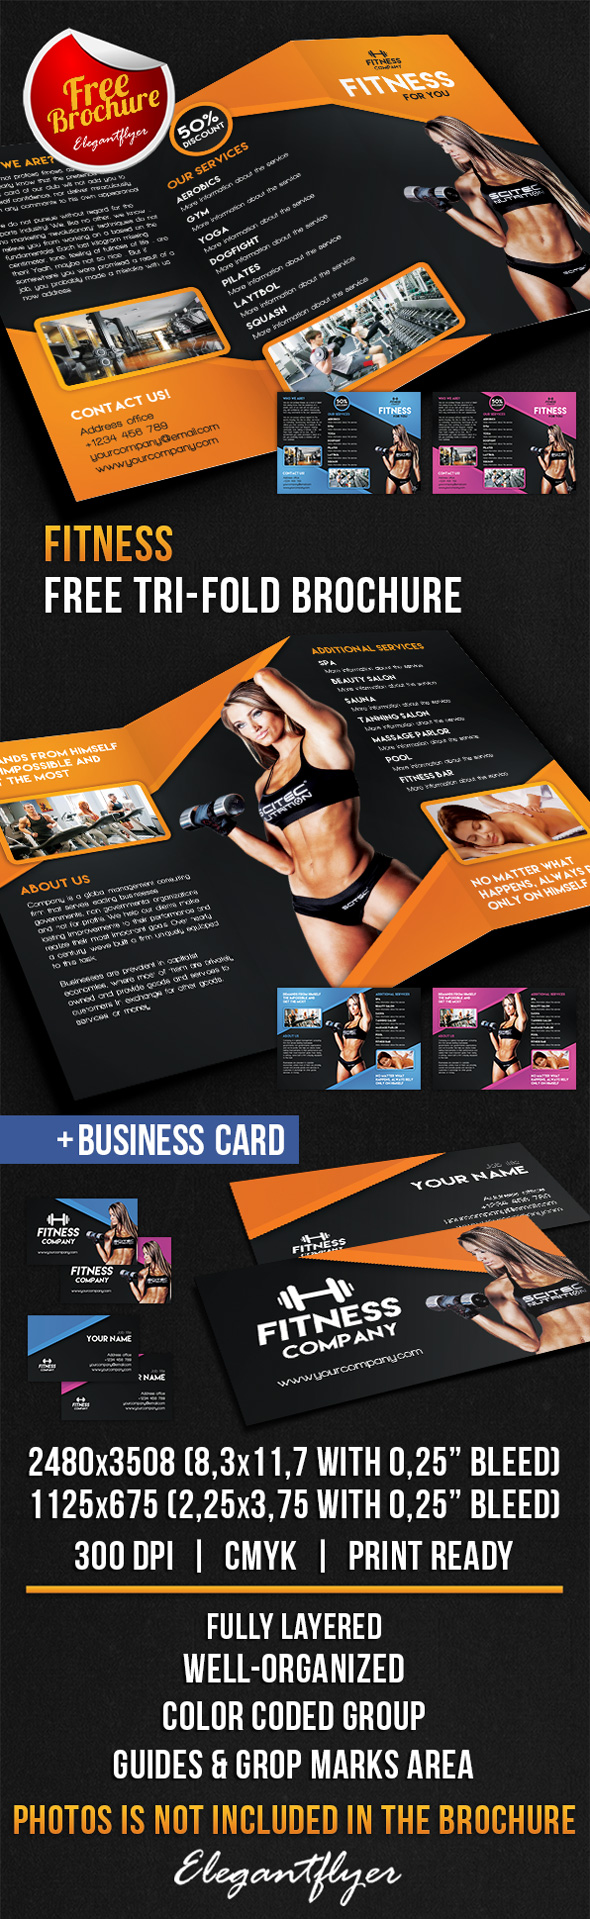 25 best free psd brochure templates free psd templates for Fitness brochure template